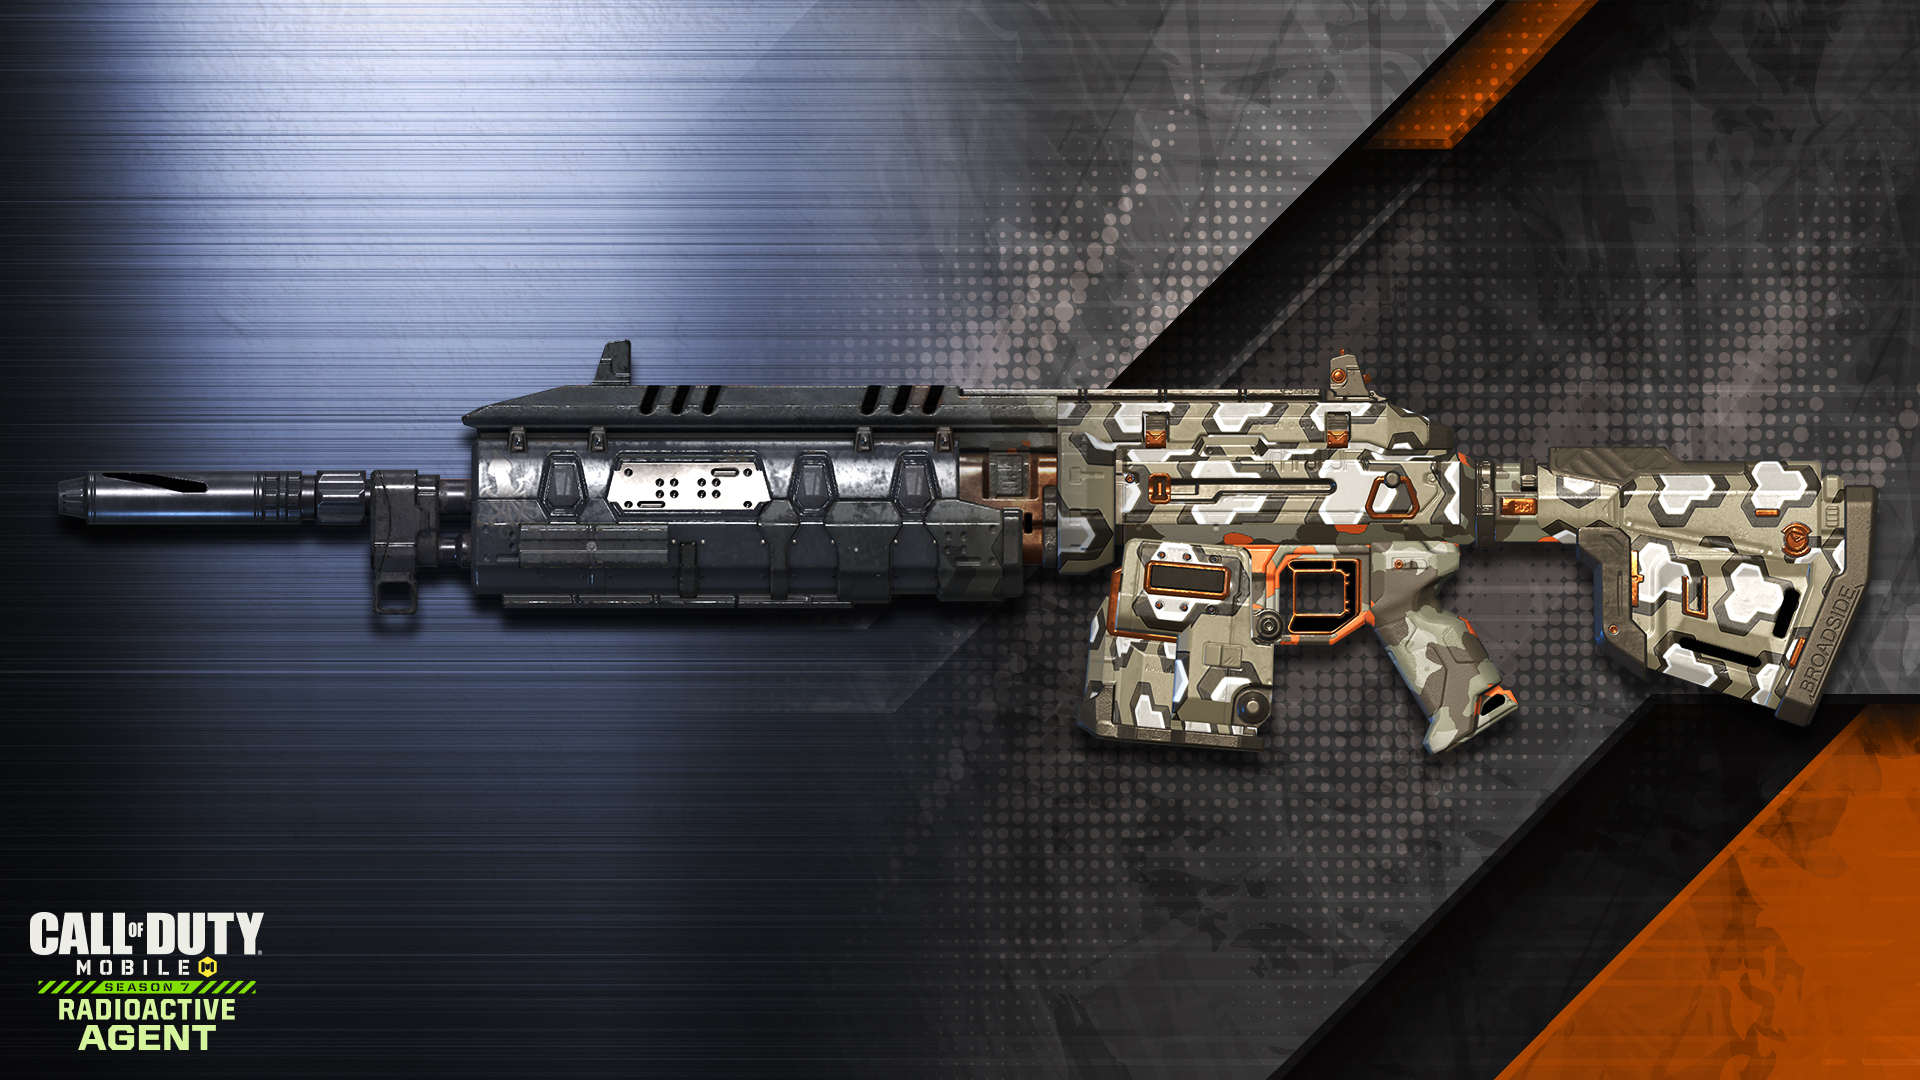 This Week in Call of Duty® - June 15 - Image 2